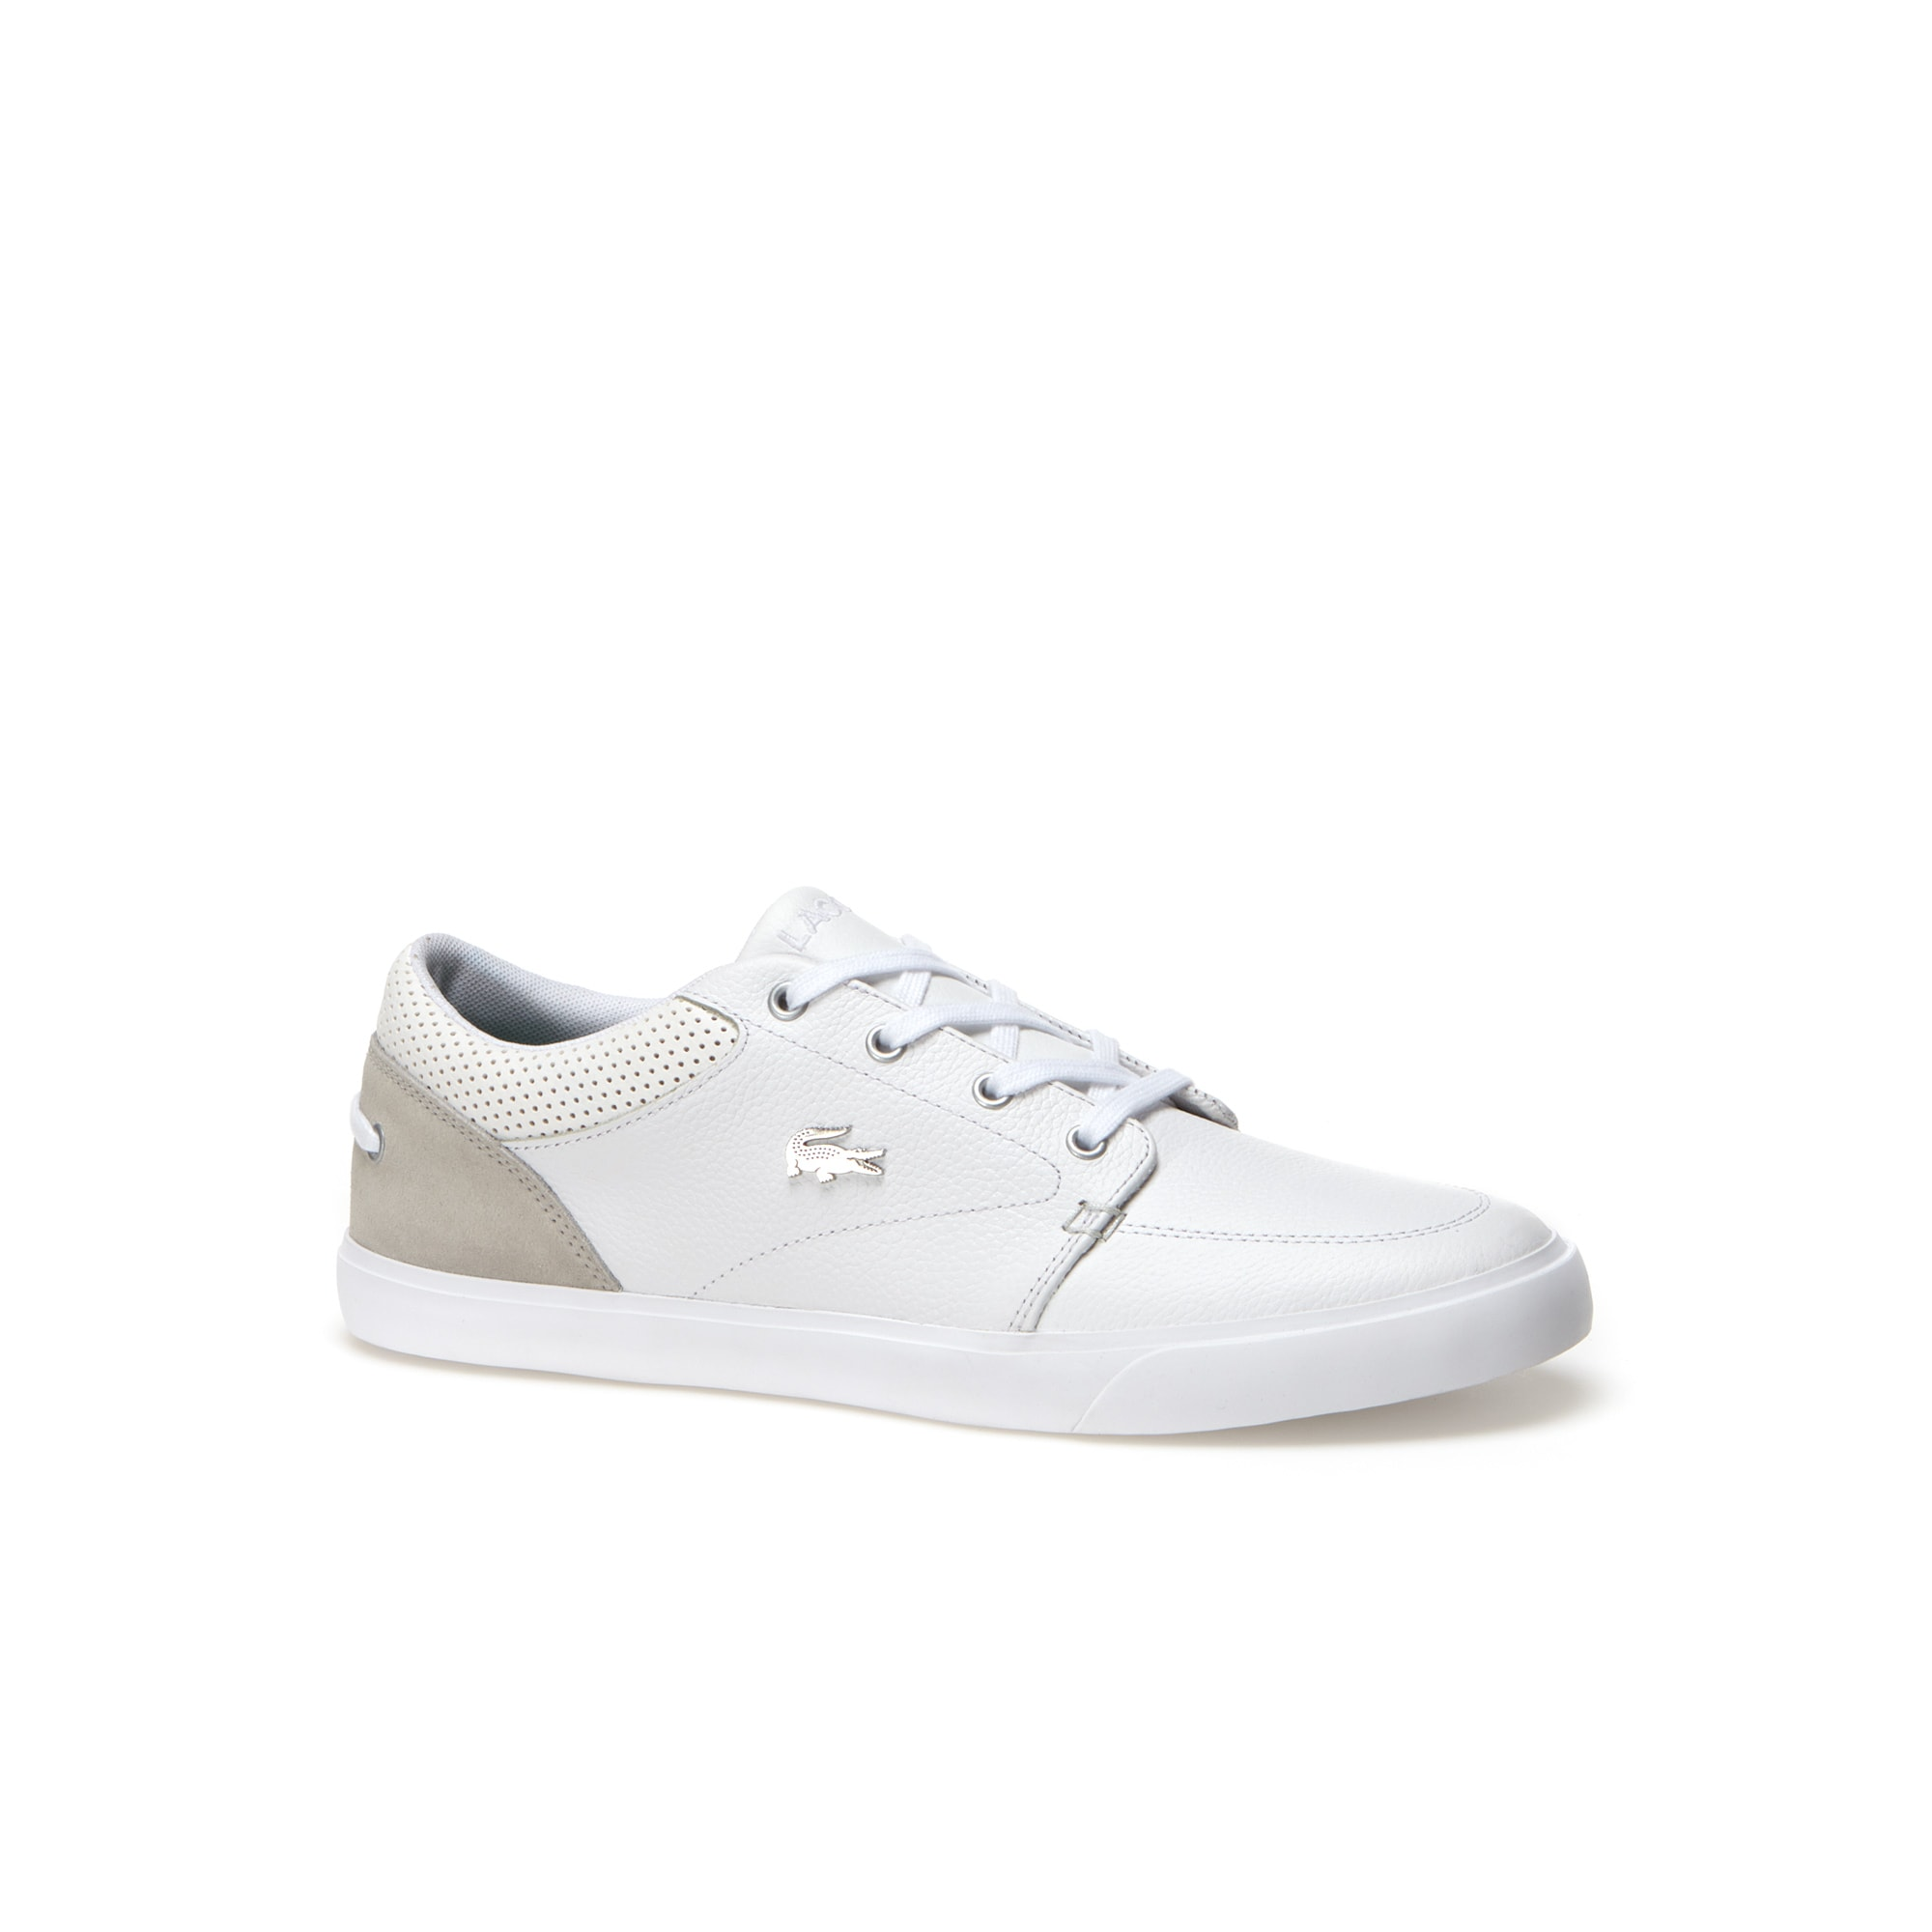 Sneakers basses Bayliss en toile